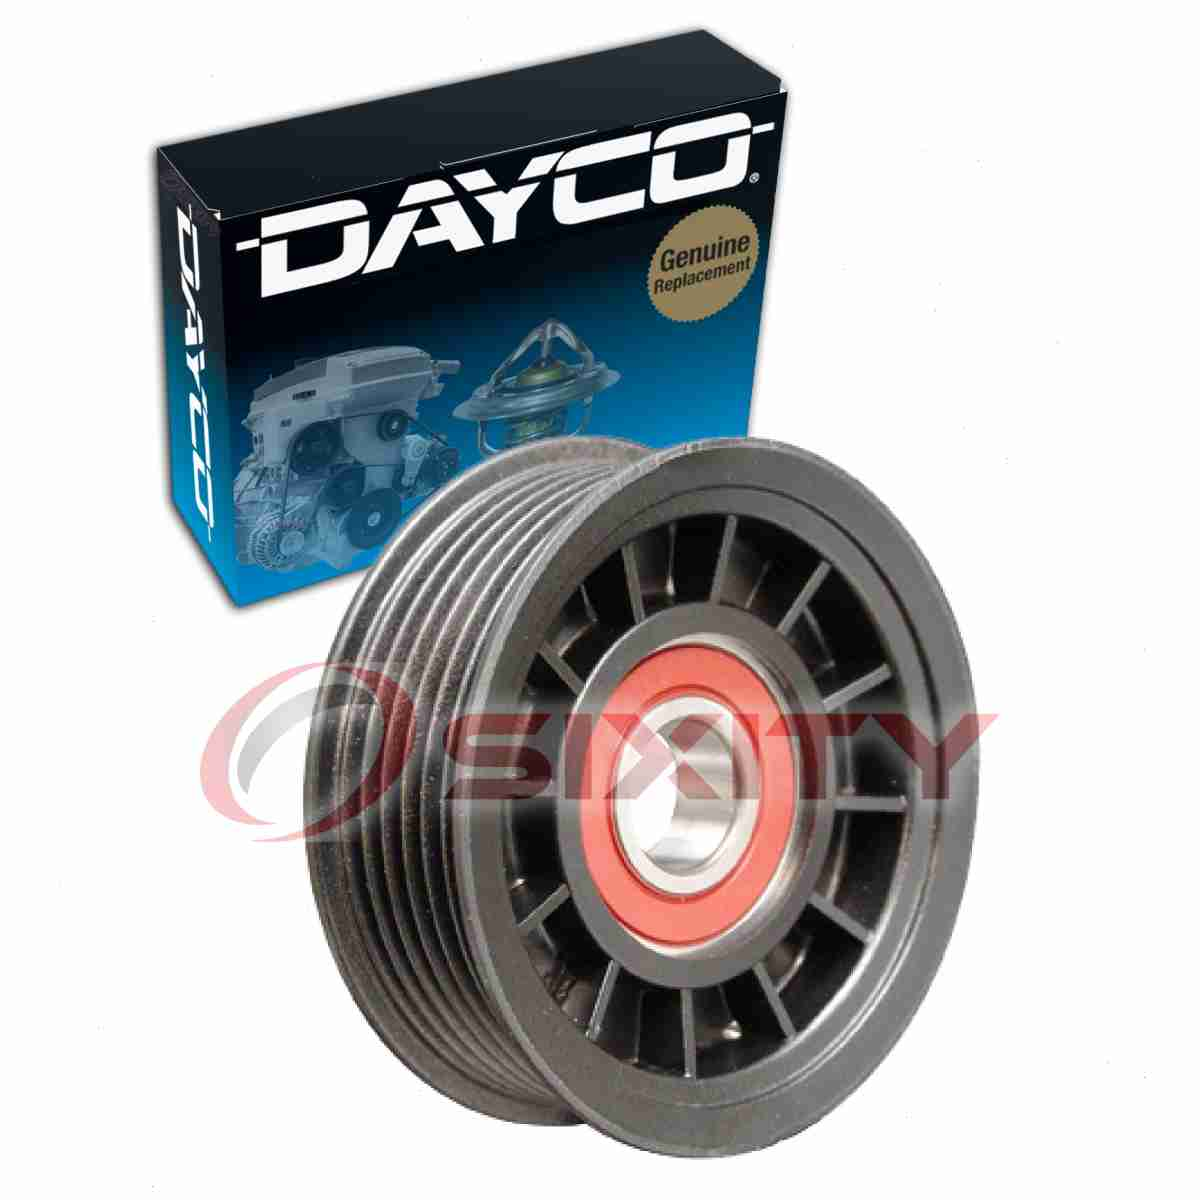 small resolution of dayco grooved drive belt pulley for 1999 2010 jeep grand cherokee this jeep grand cherokee belt diagram is for model year 2005 with v6 3